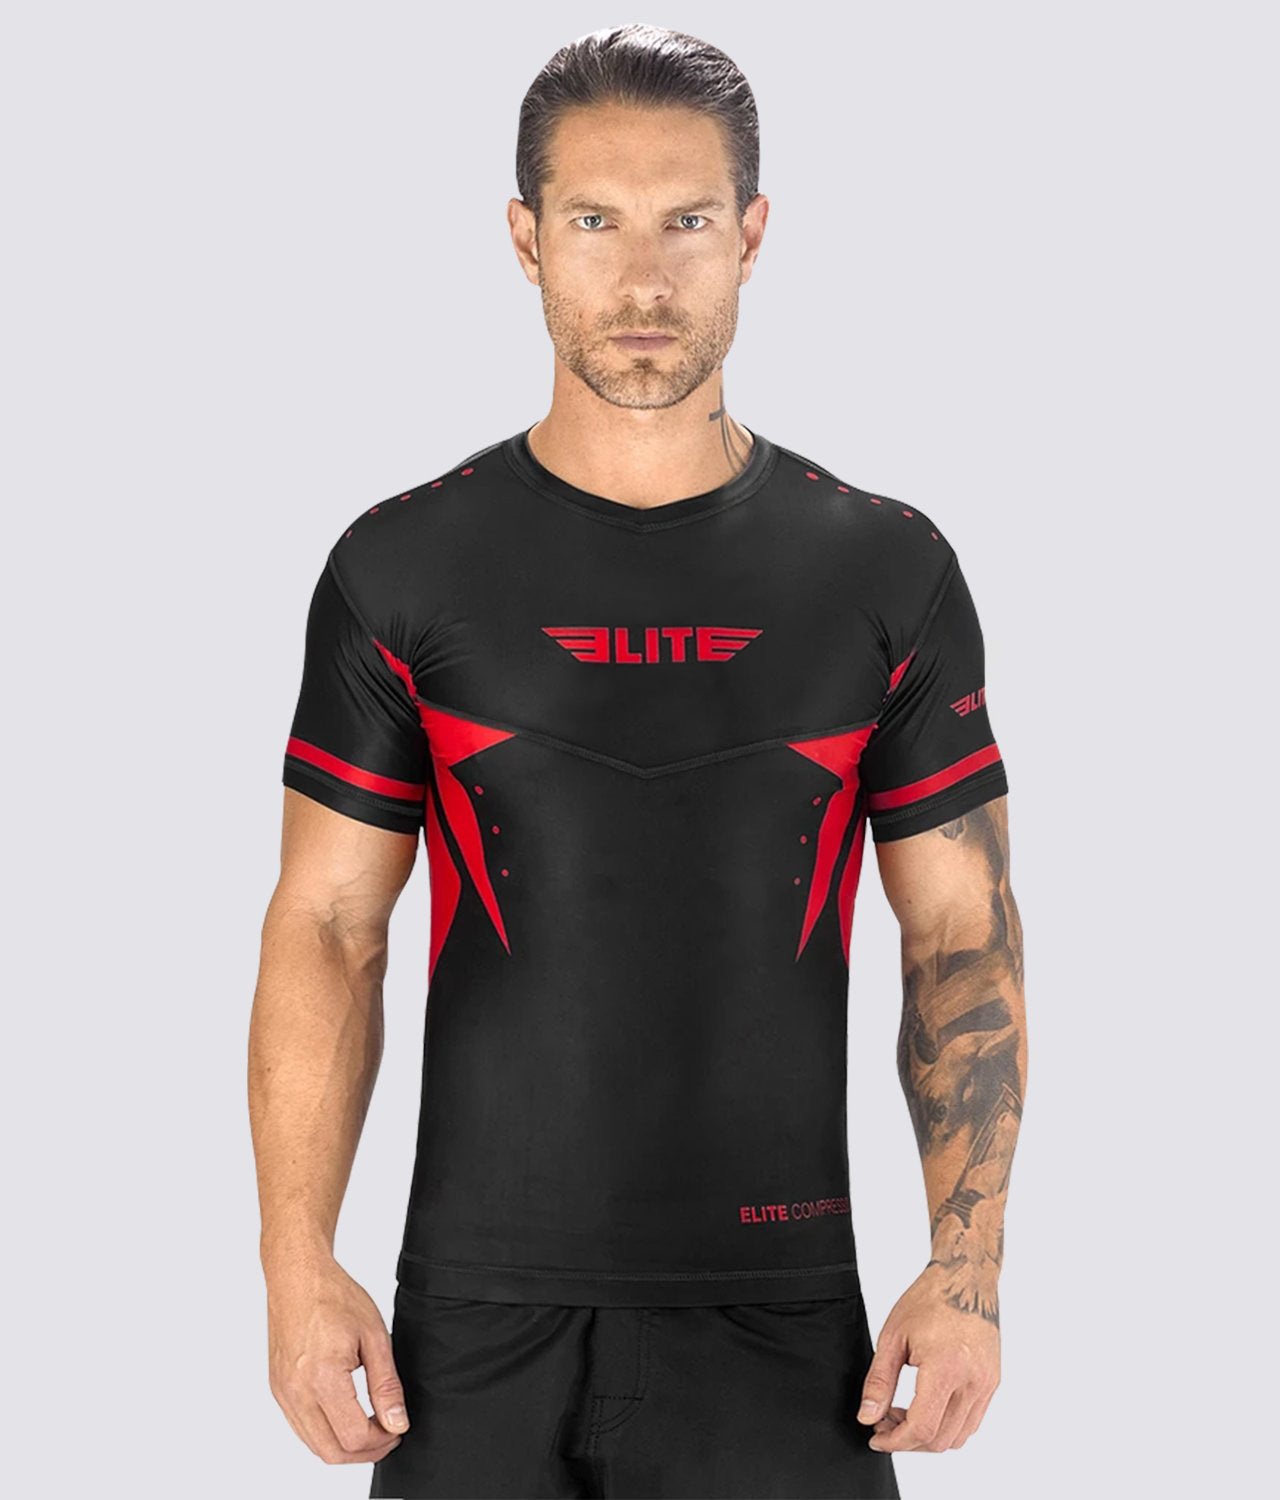 Elite Sports Star Series Sublimation Black/Red Short Sleeve Training Rash Guard